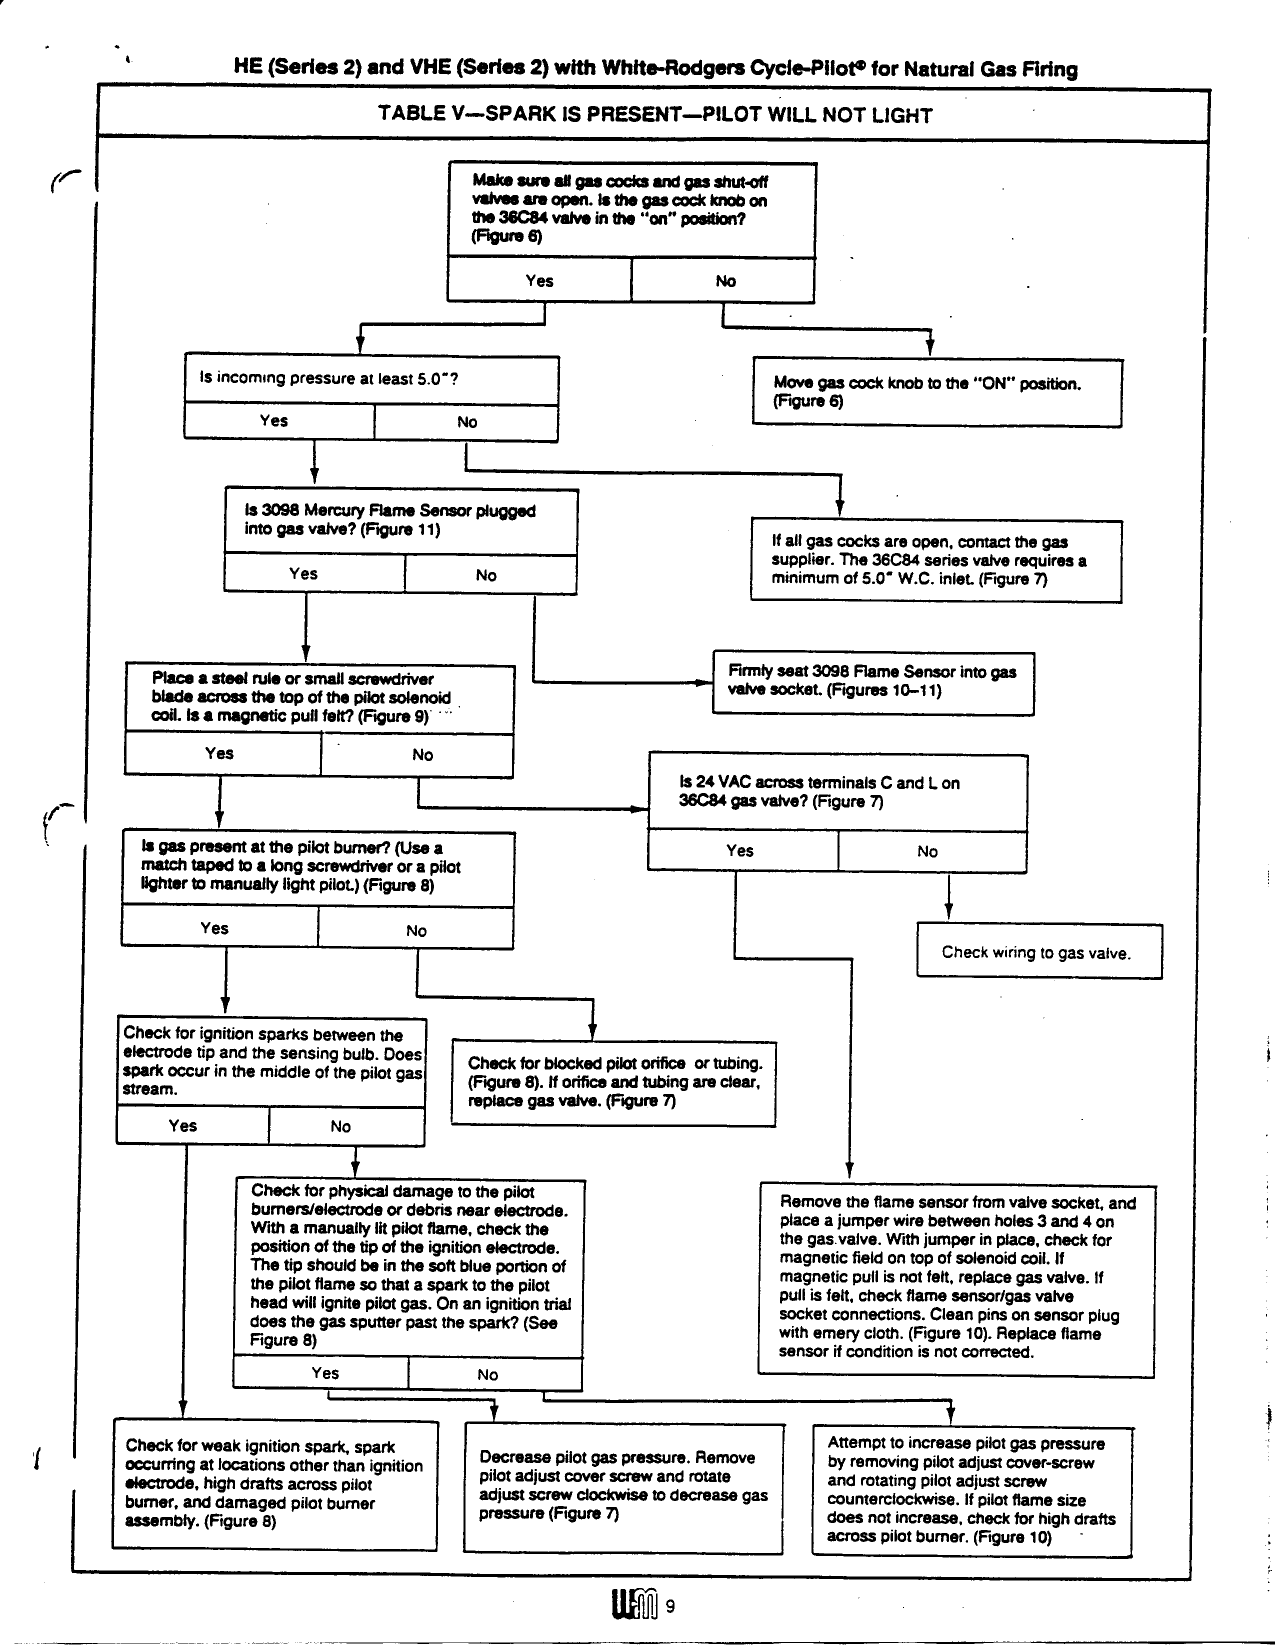 Weil Mclain Vhe Series 2 Users Manual Wiring Diagram Page 9 Of 11